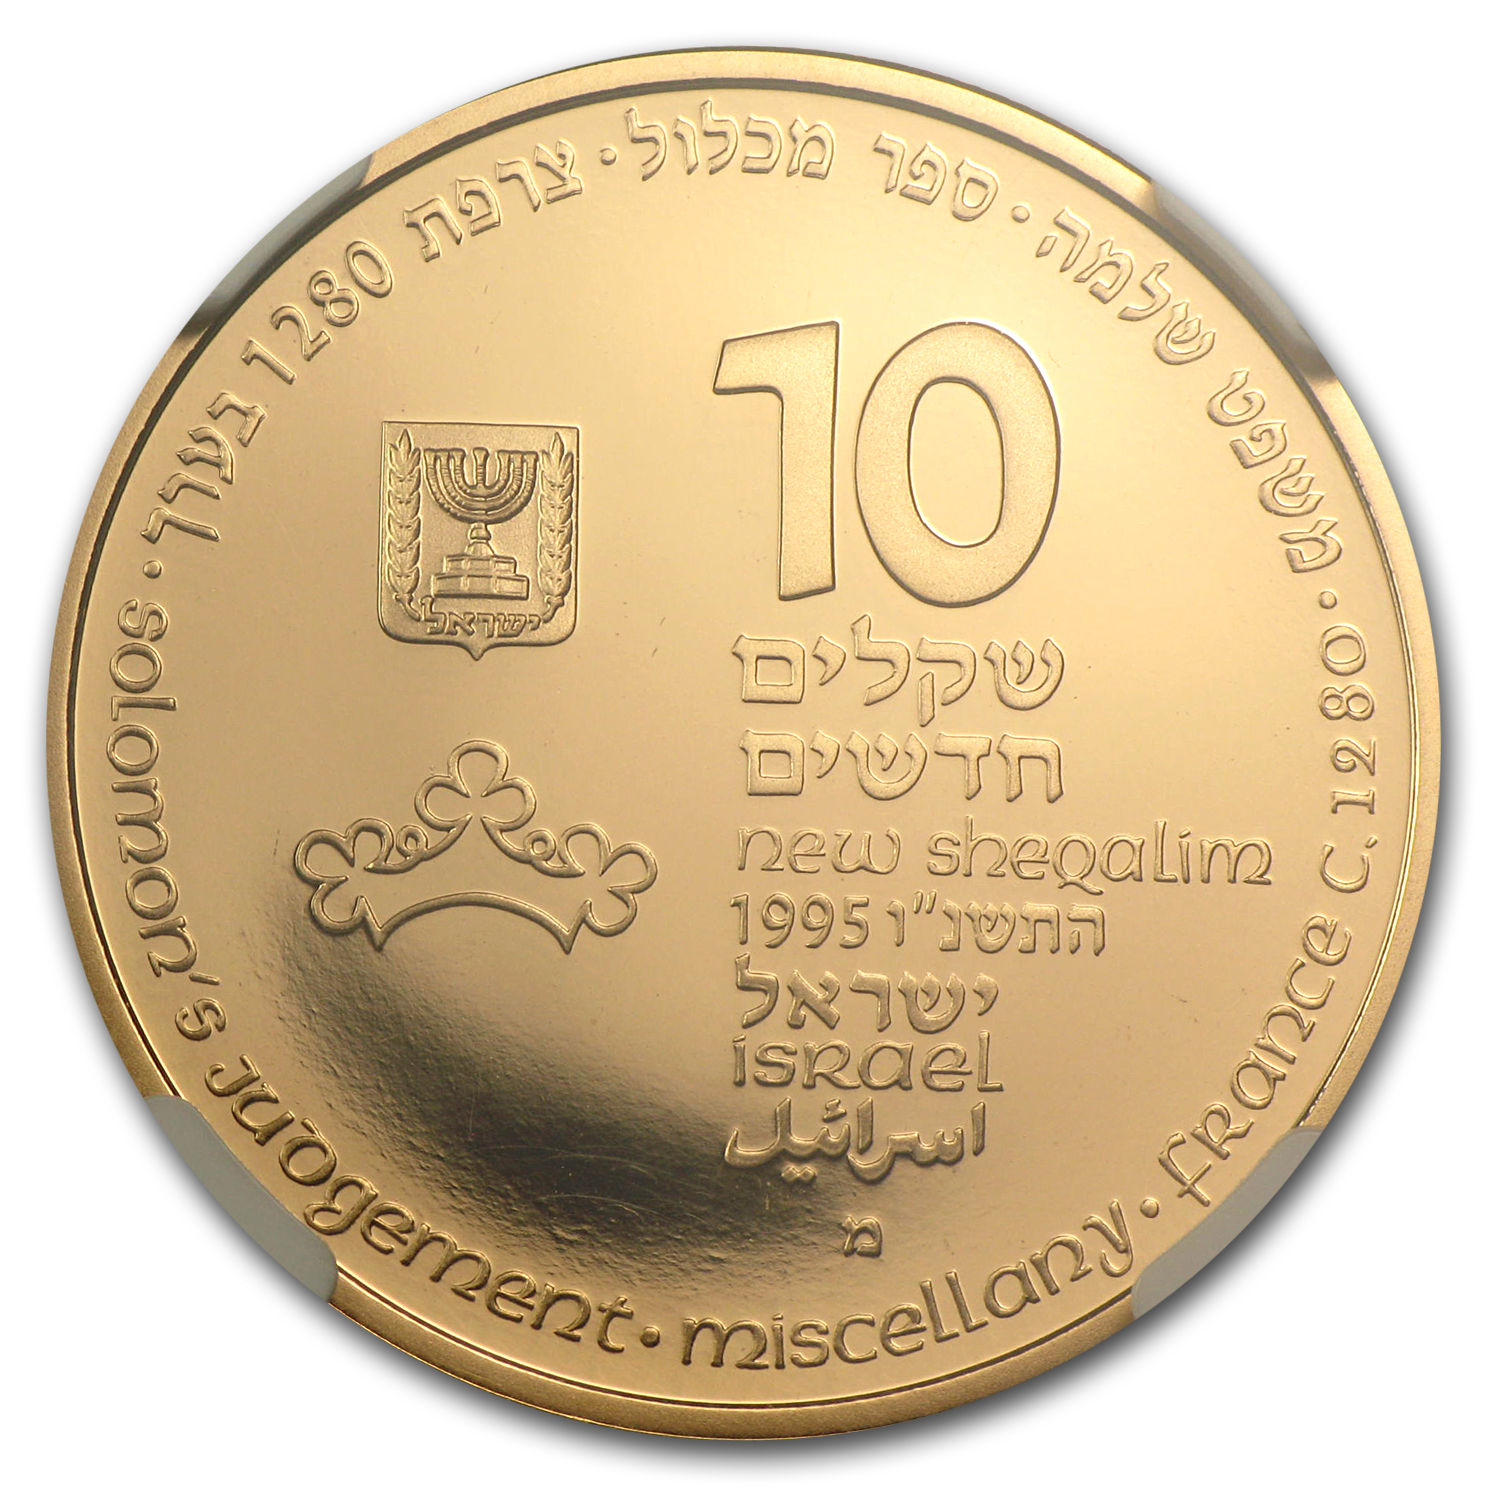 1995 Israel Solomon's Judgement 1/2 oz Proof Gold PF-70 UCAM NGC